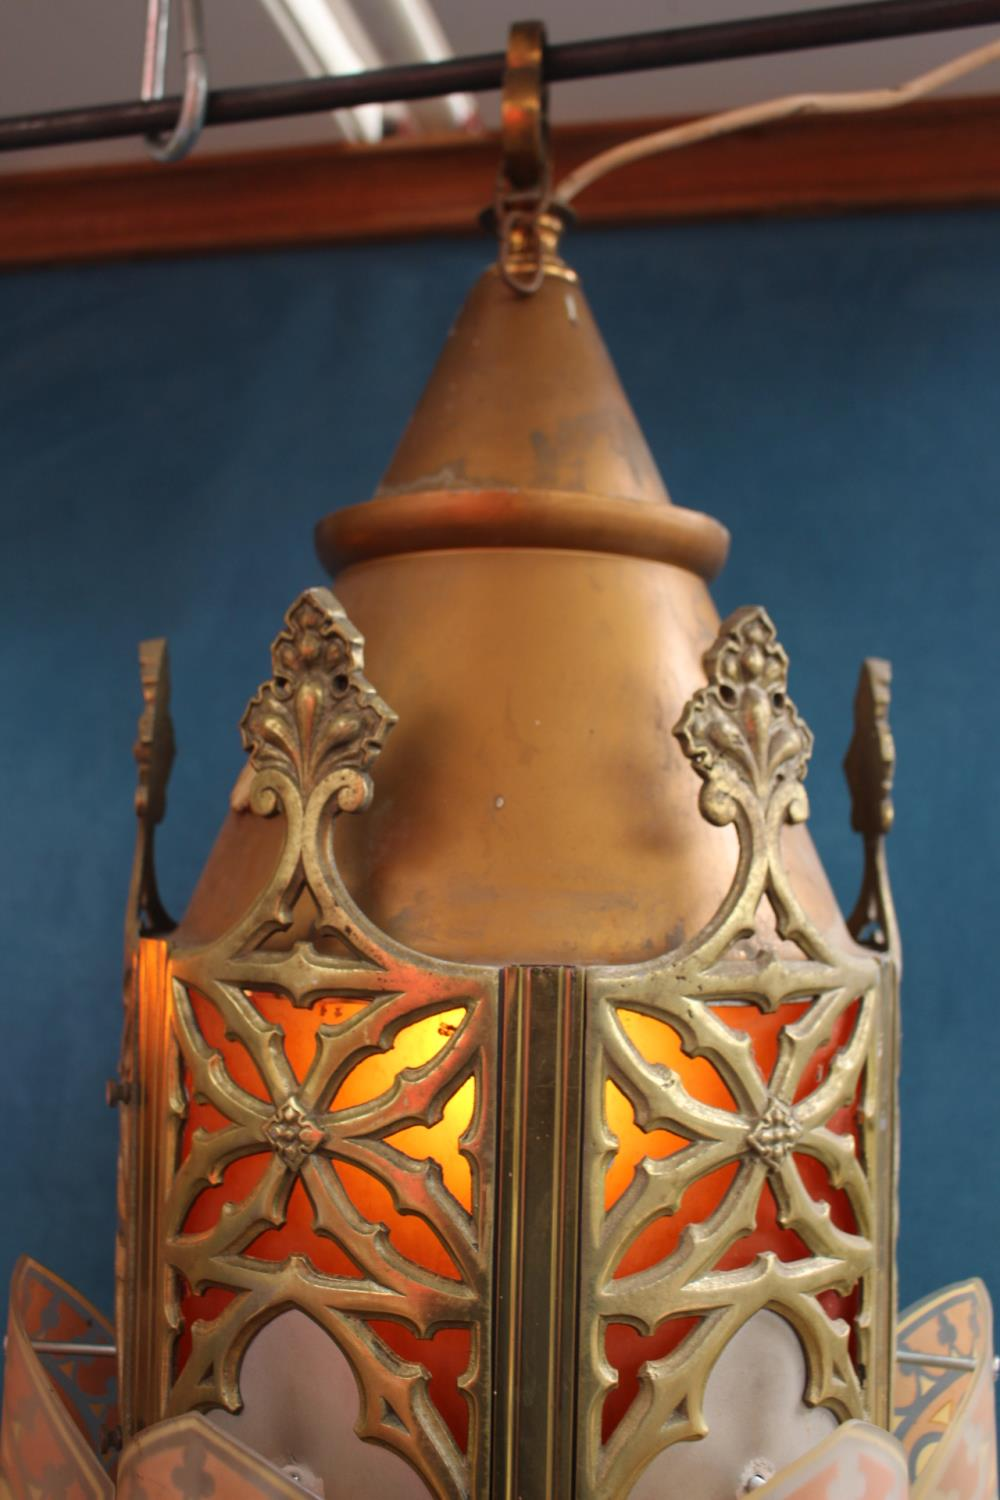 Pair of brass and glass hanging lanterns - Image 3 of 3